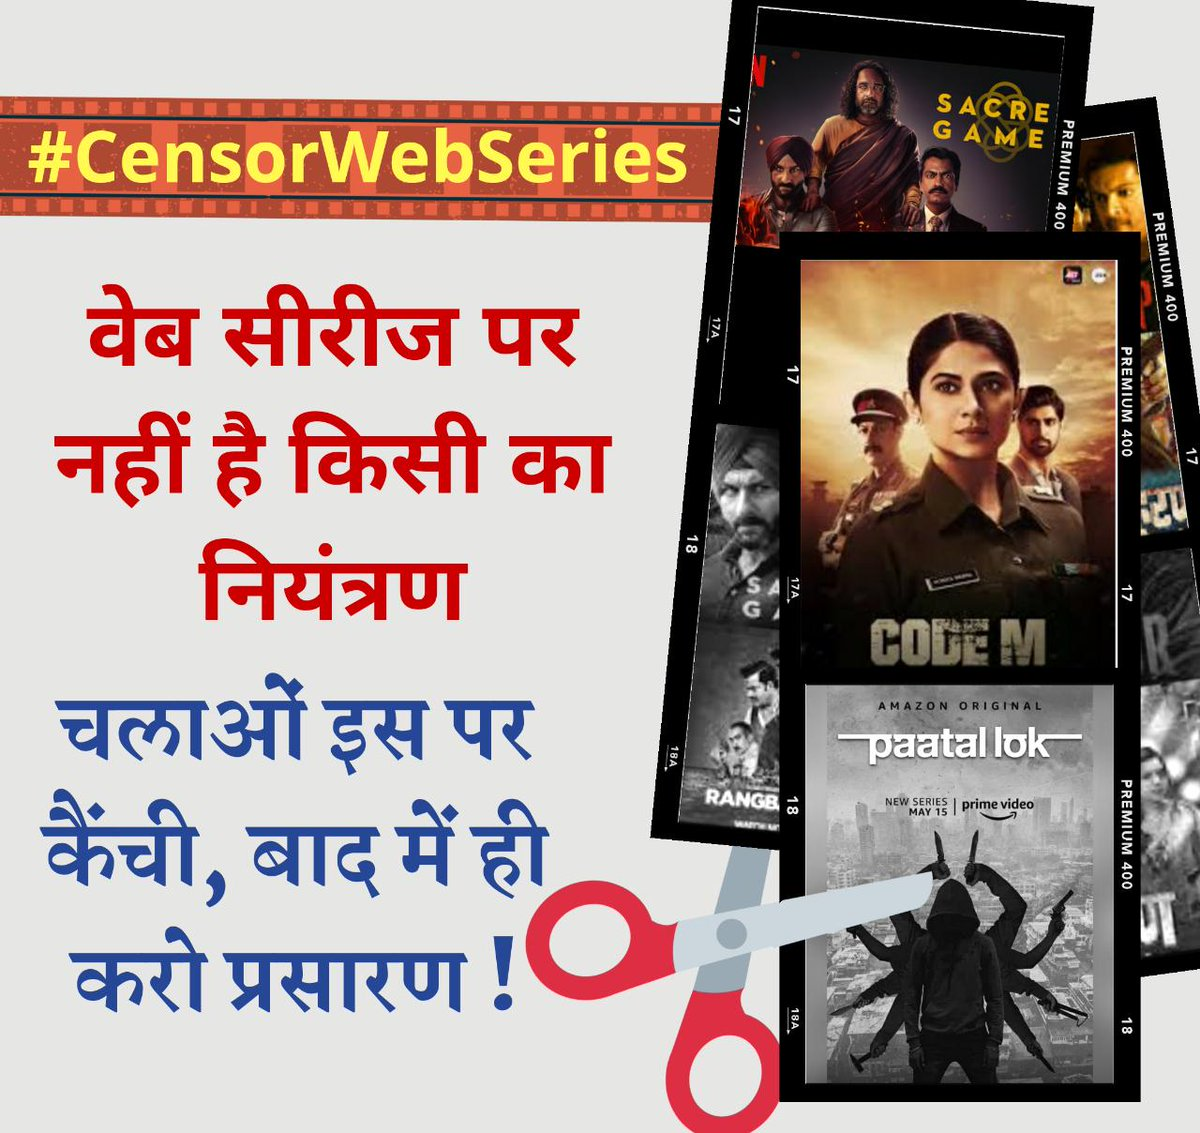 They mention the use of Gangajal in a mocking way! Shame on Anushka Sharma for making hinduphopic webseries. #BanAntiHinduPatalLokpic.twitter.com/1BY5yT4Hvk